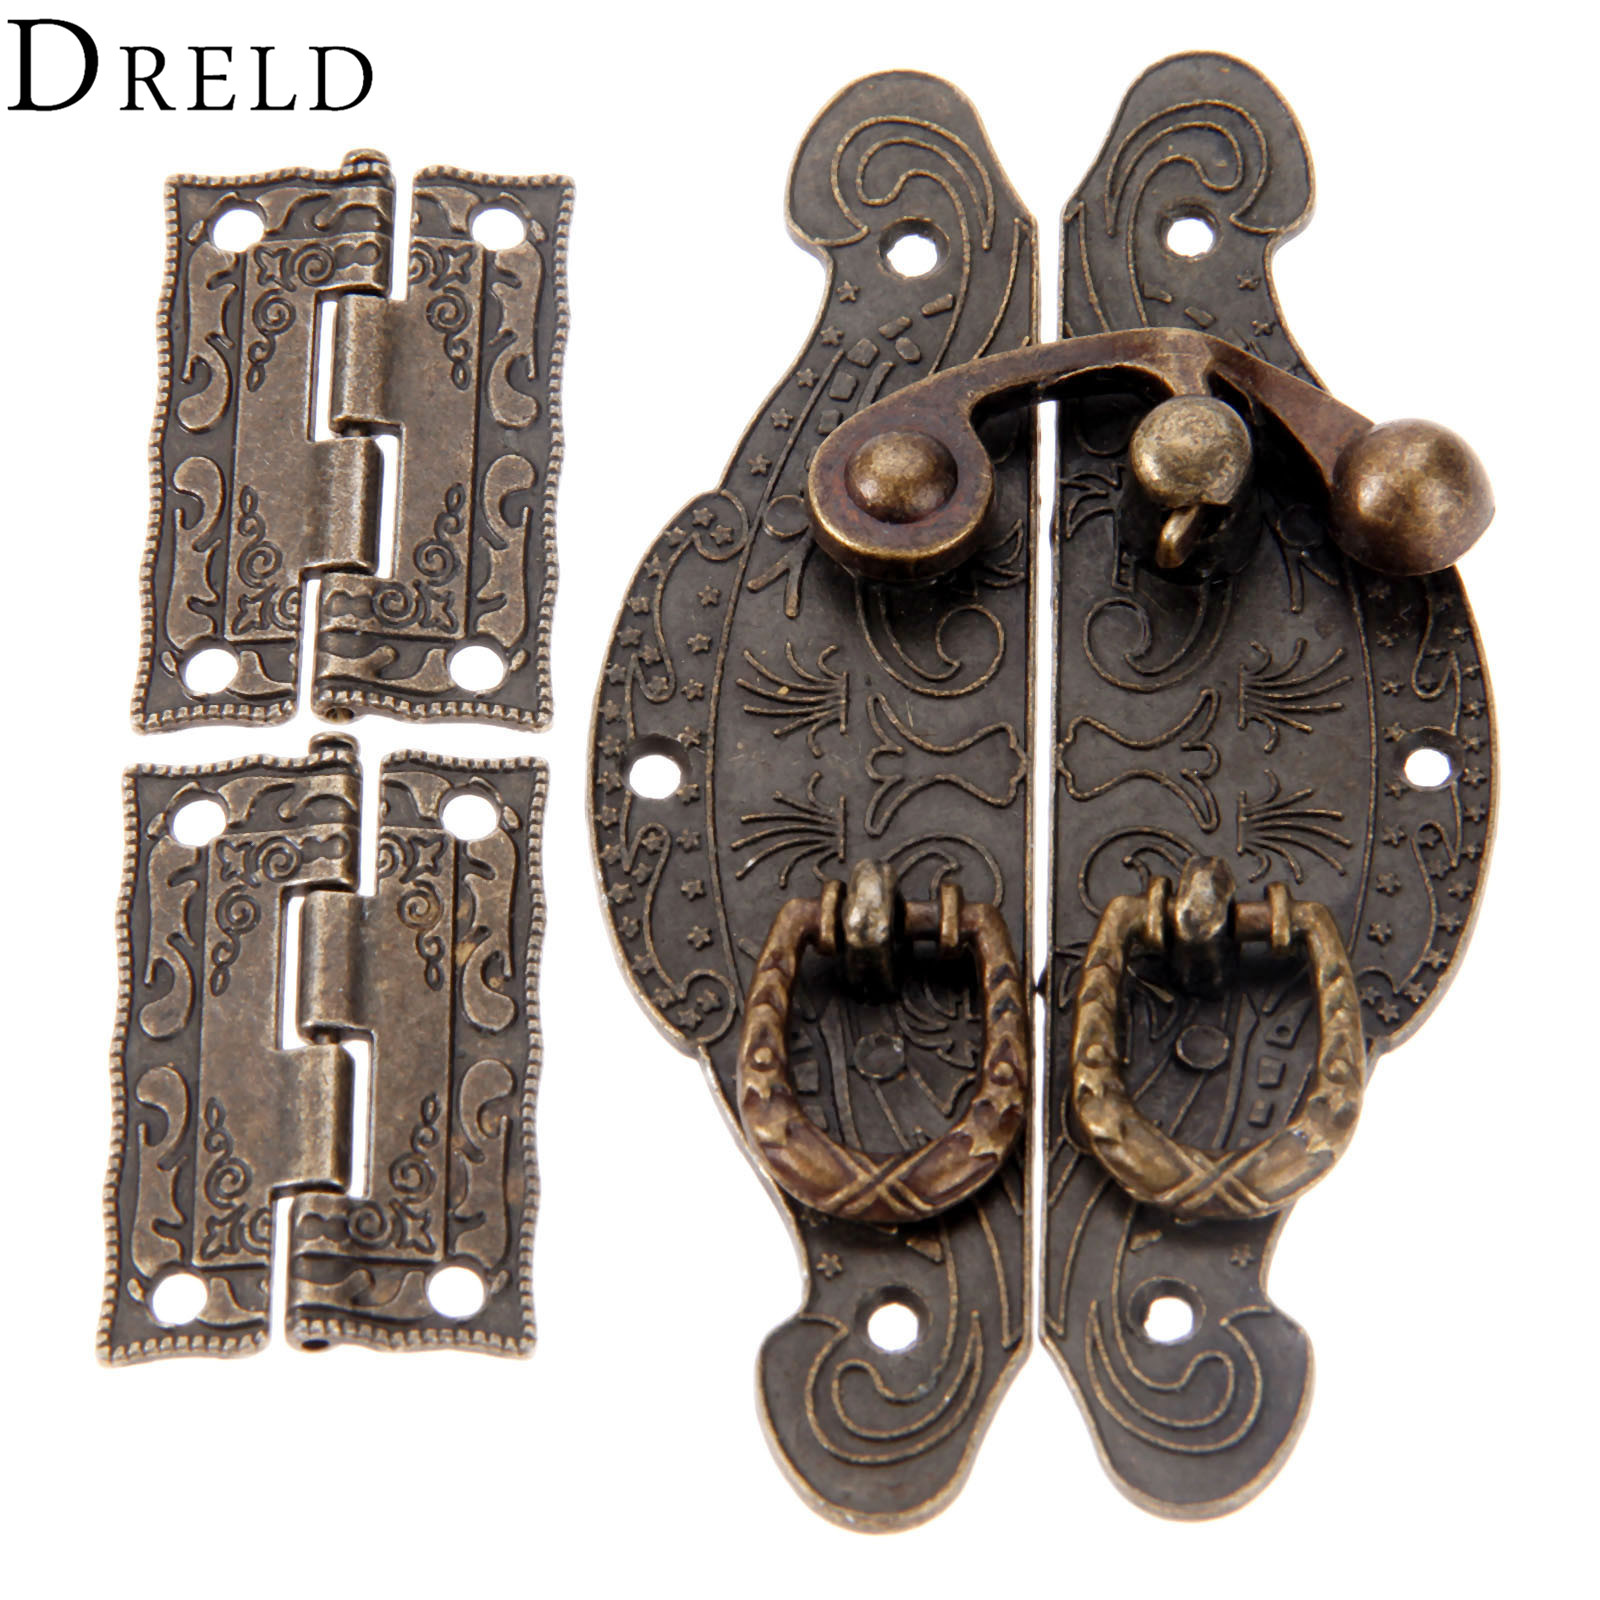 Dreld 2pcs Antique Bronze Cabinet Hinges +jewelry Wooden Box Case Toggle Hasp Latch Furniture Accessories Vintage Hardware